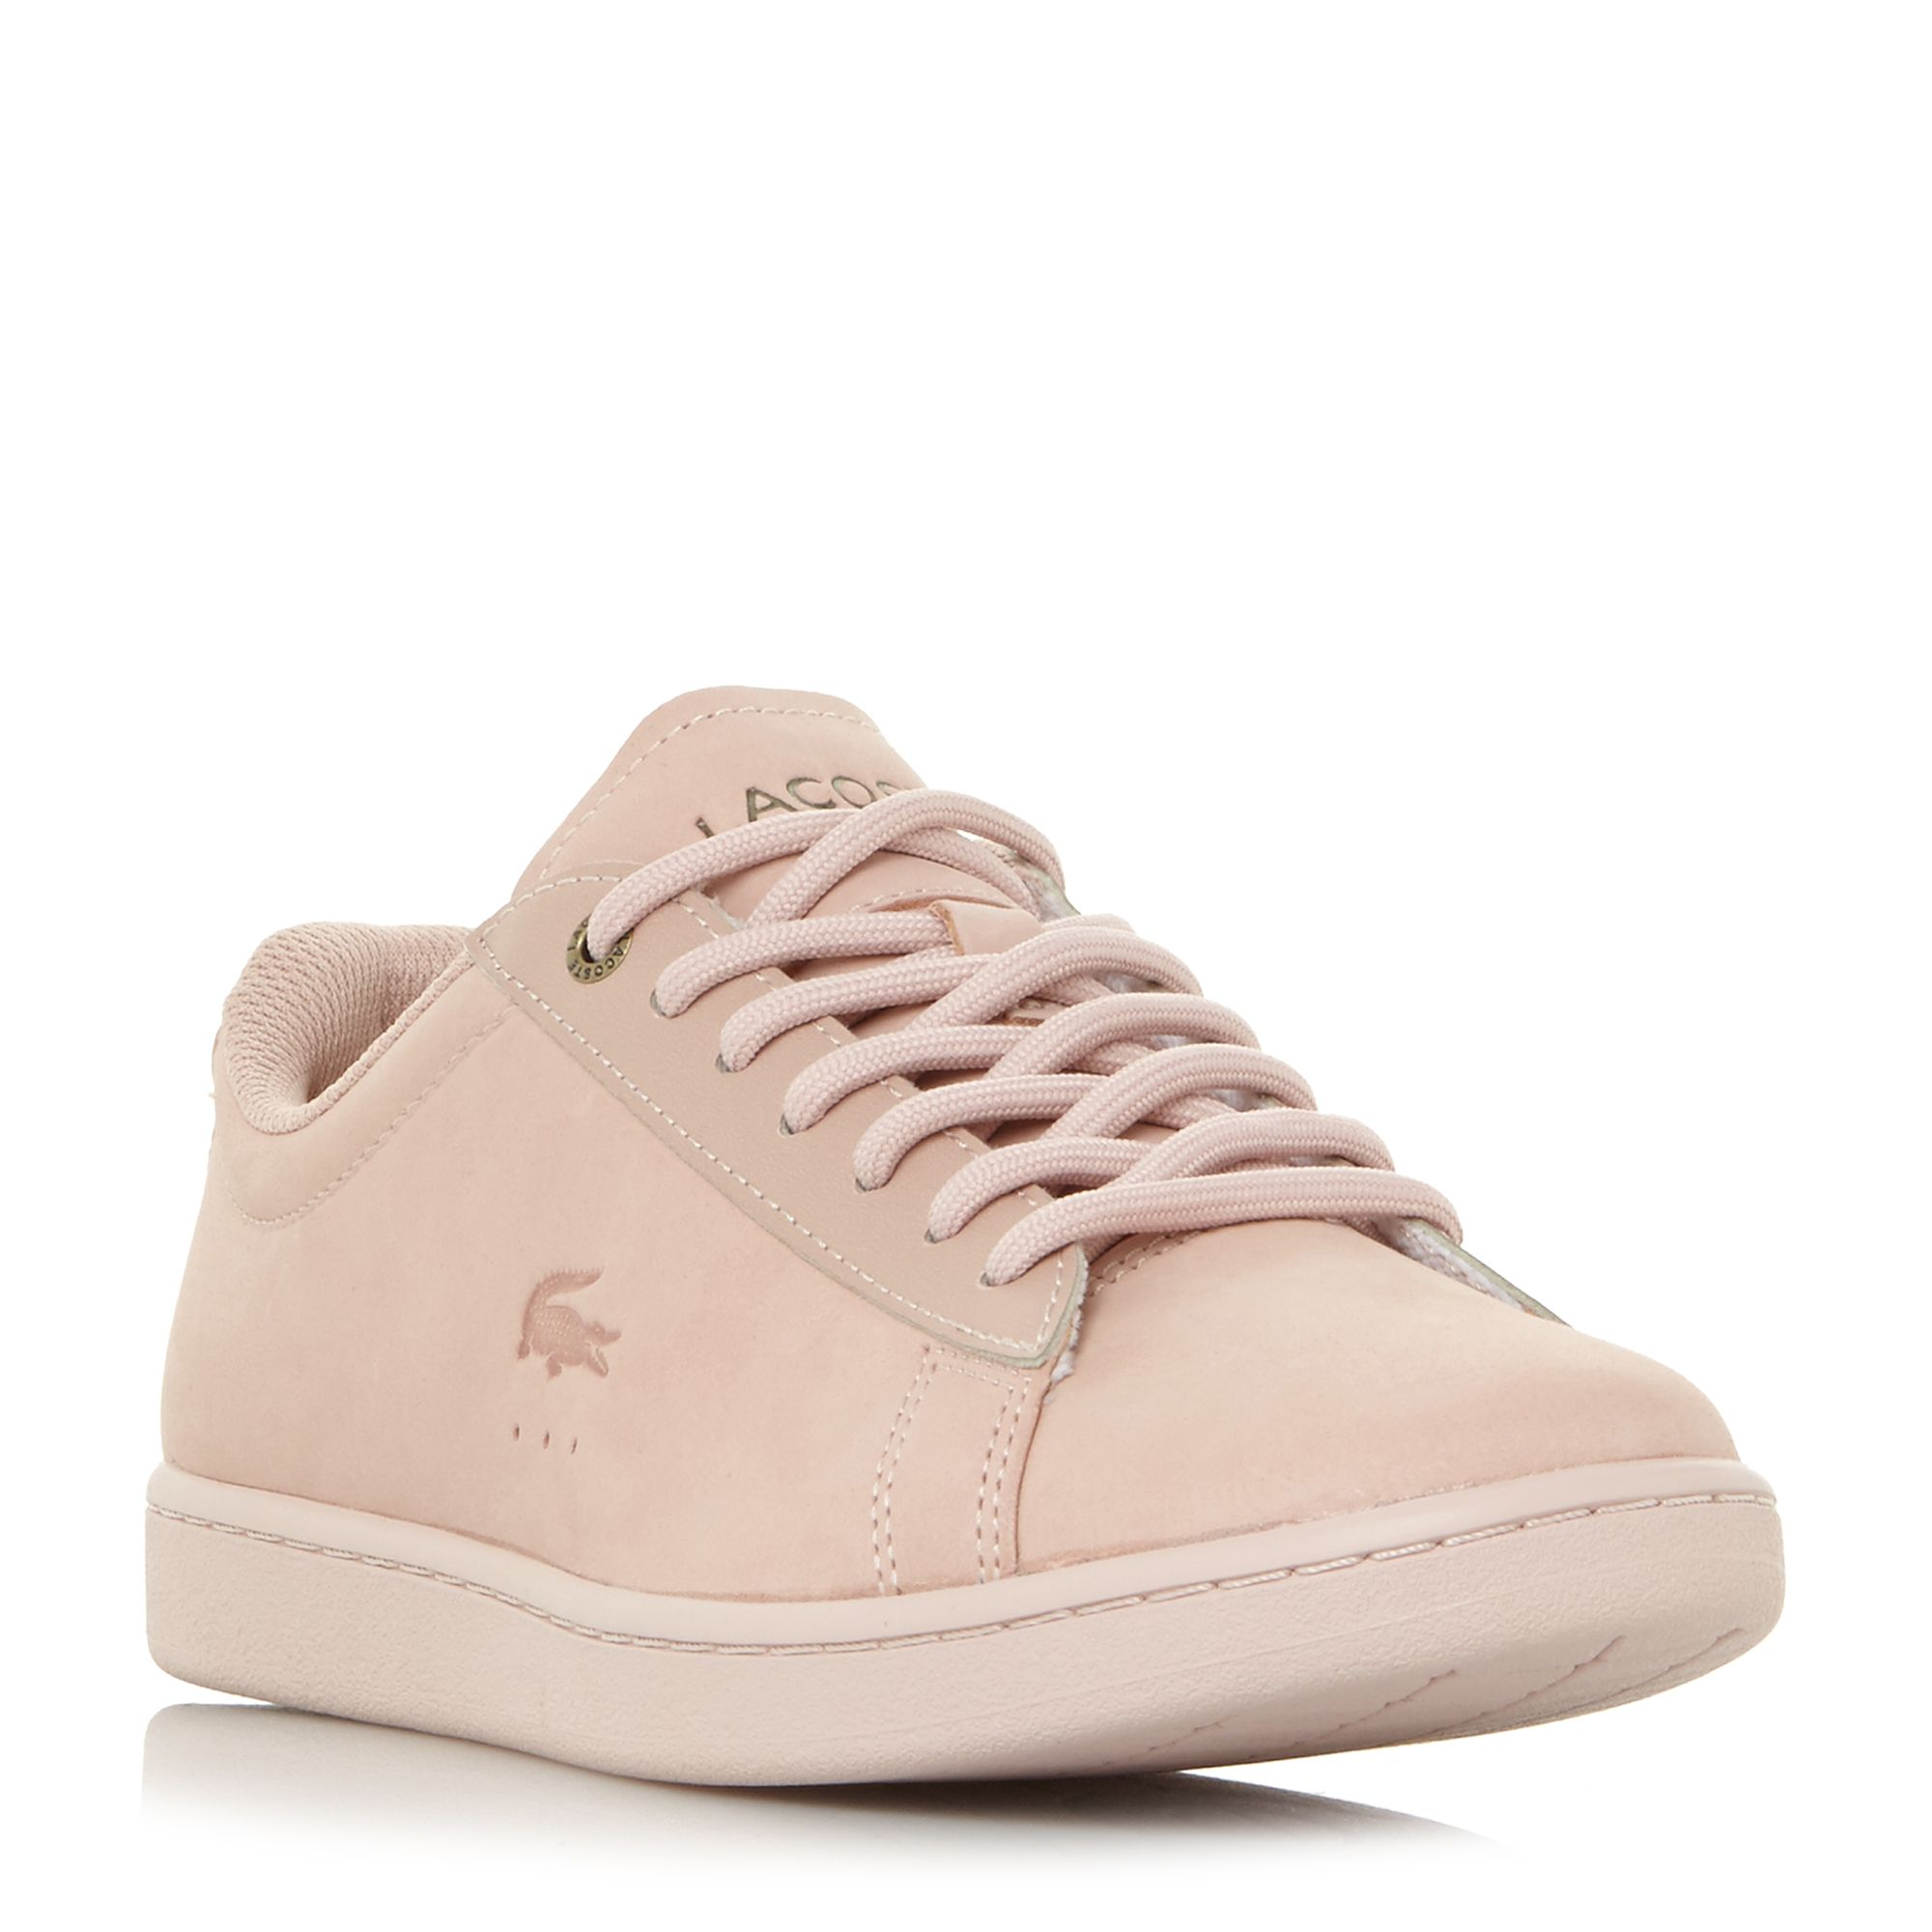 Lacoste Carnaby Evo 118 Tonal Lace Up Trainers, Pink